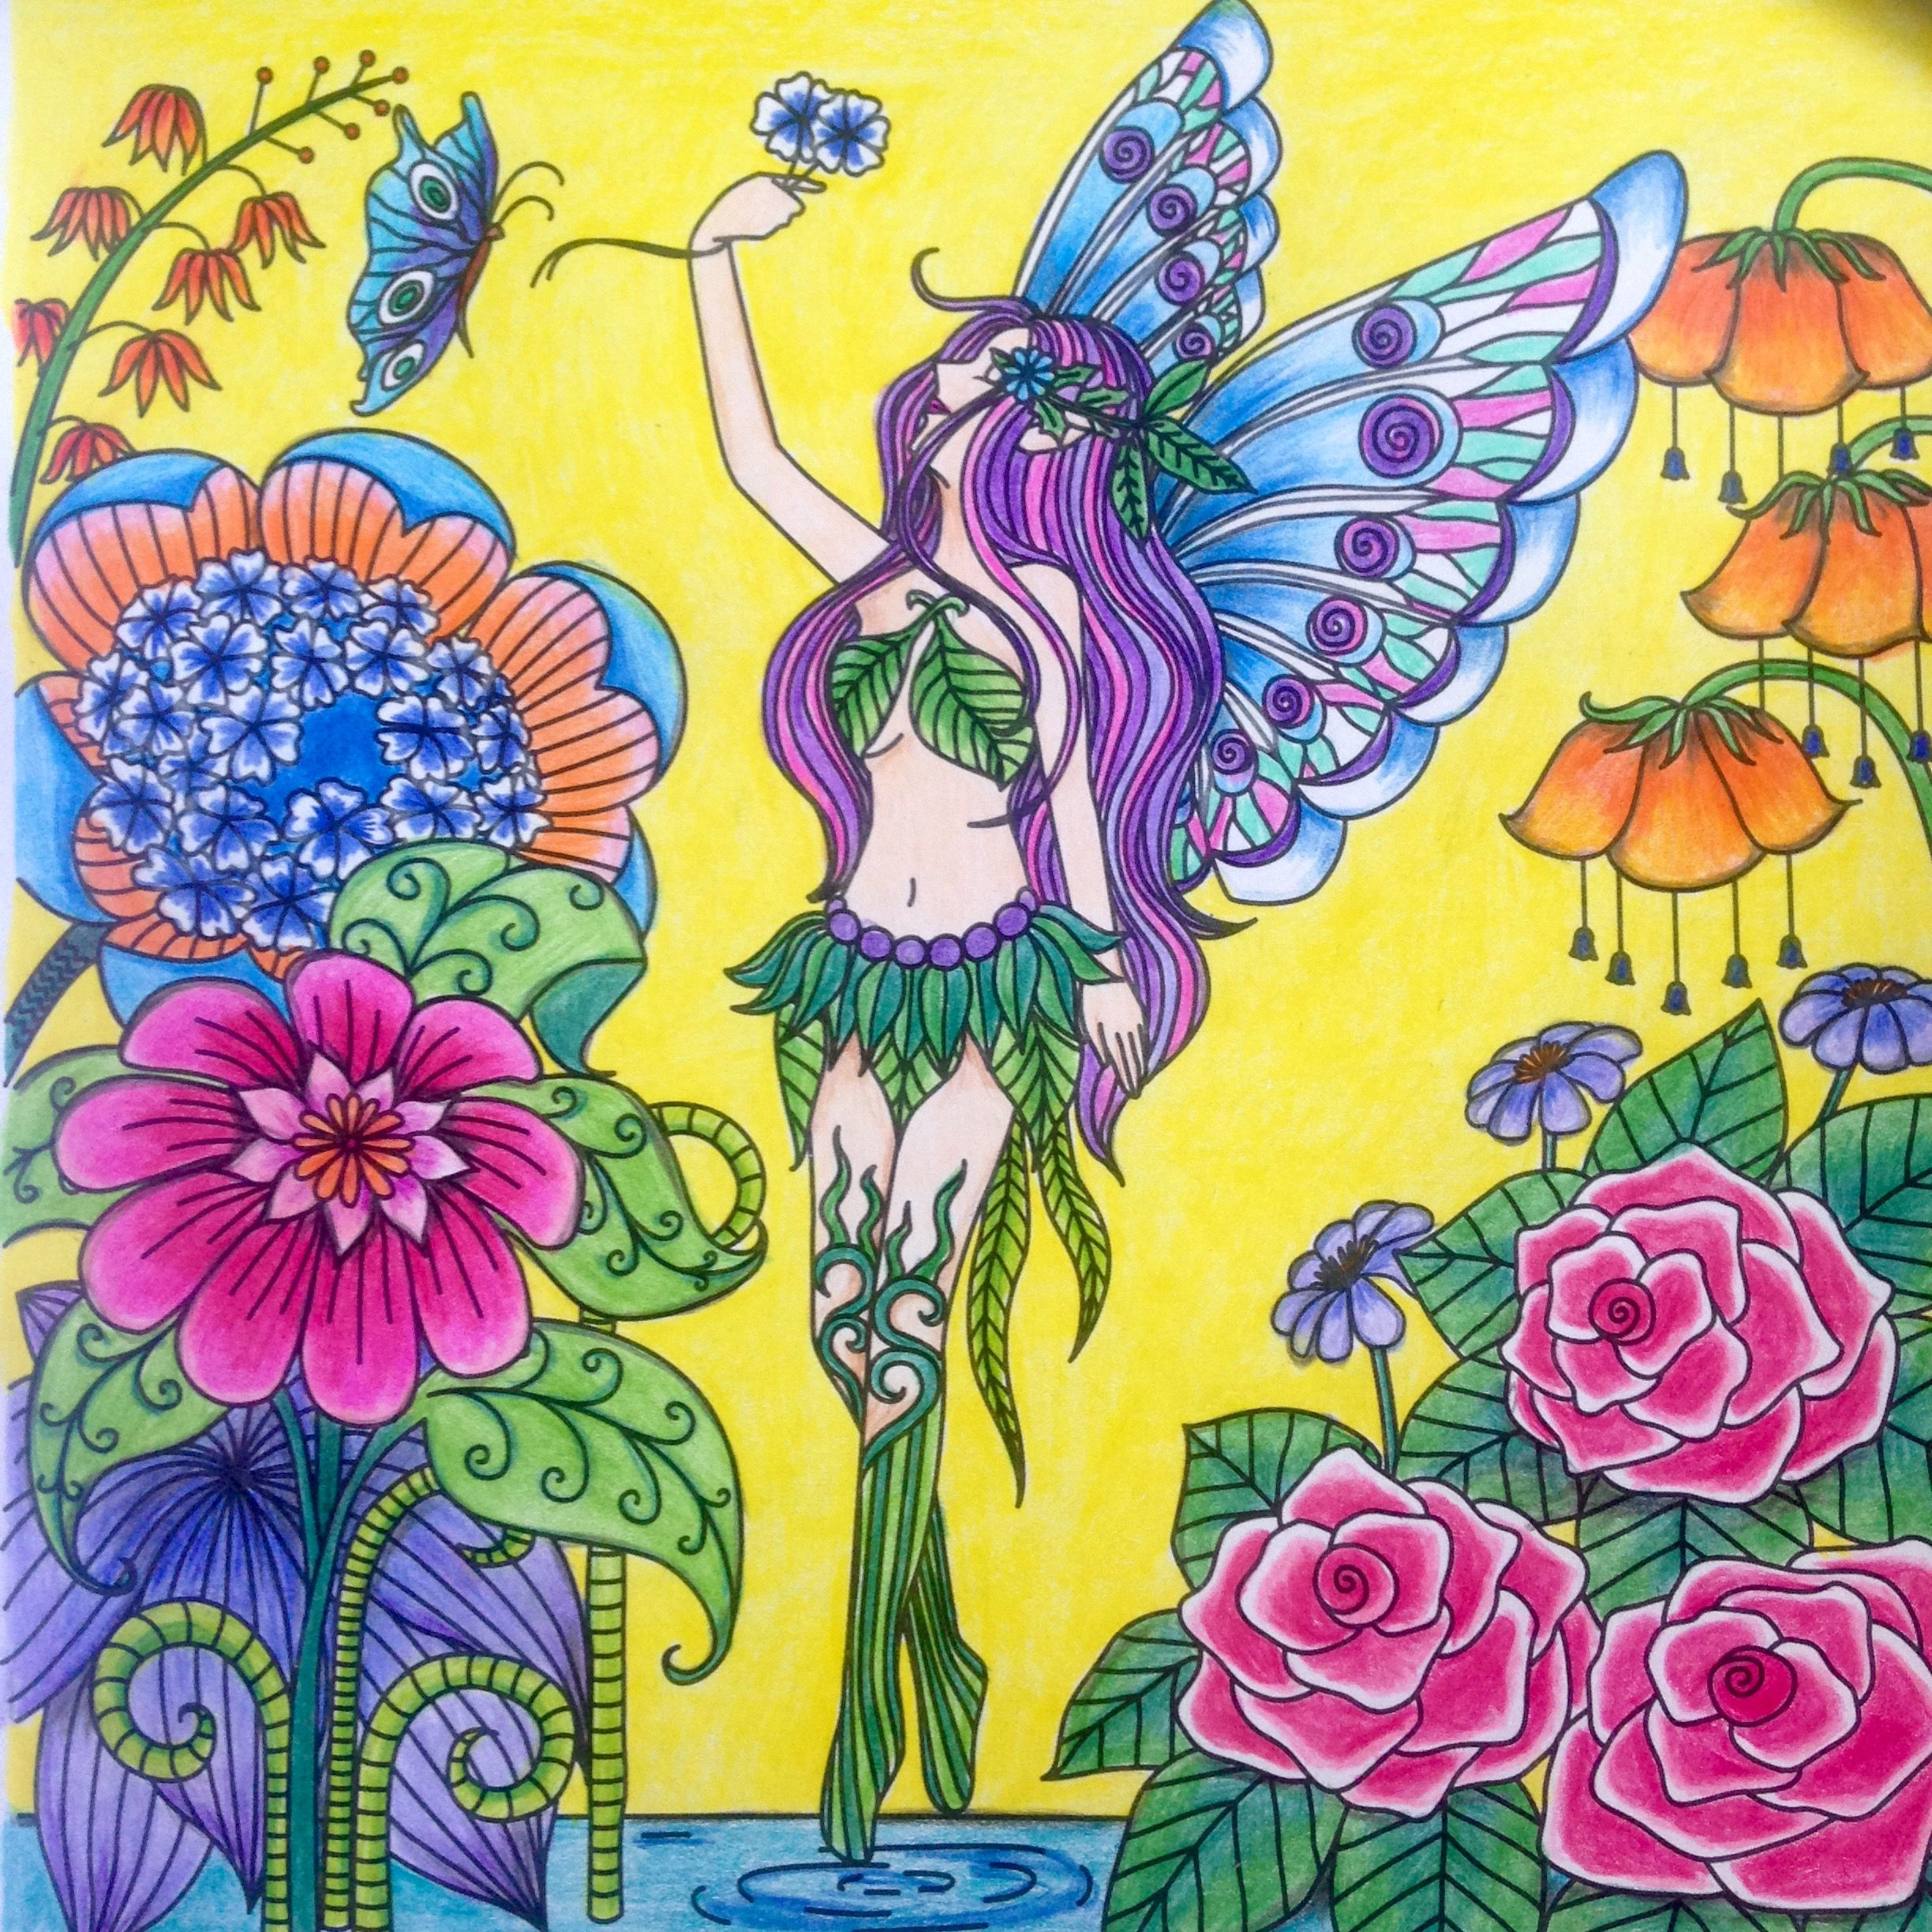 Coloring. | Fairy art, Unicorns and mermaids, Fairy angel